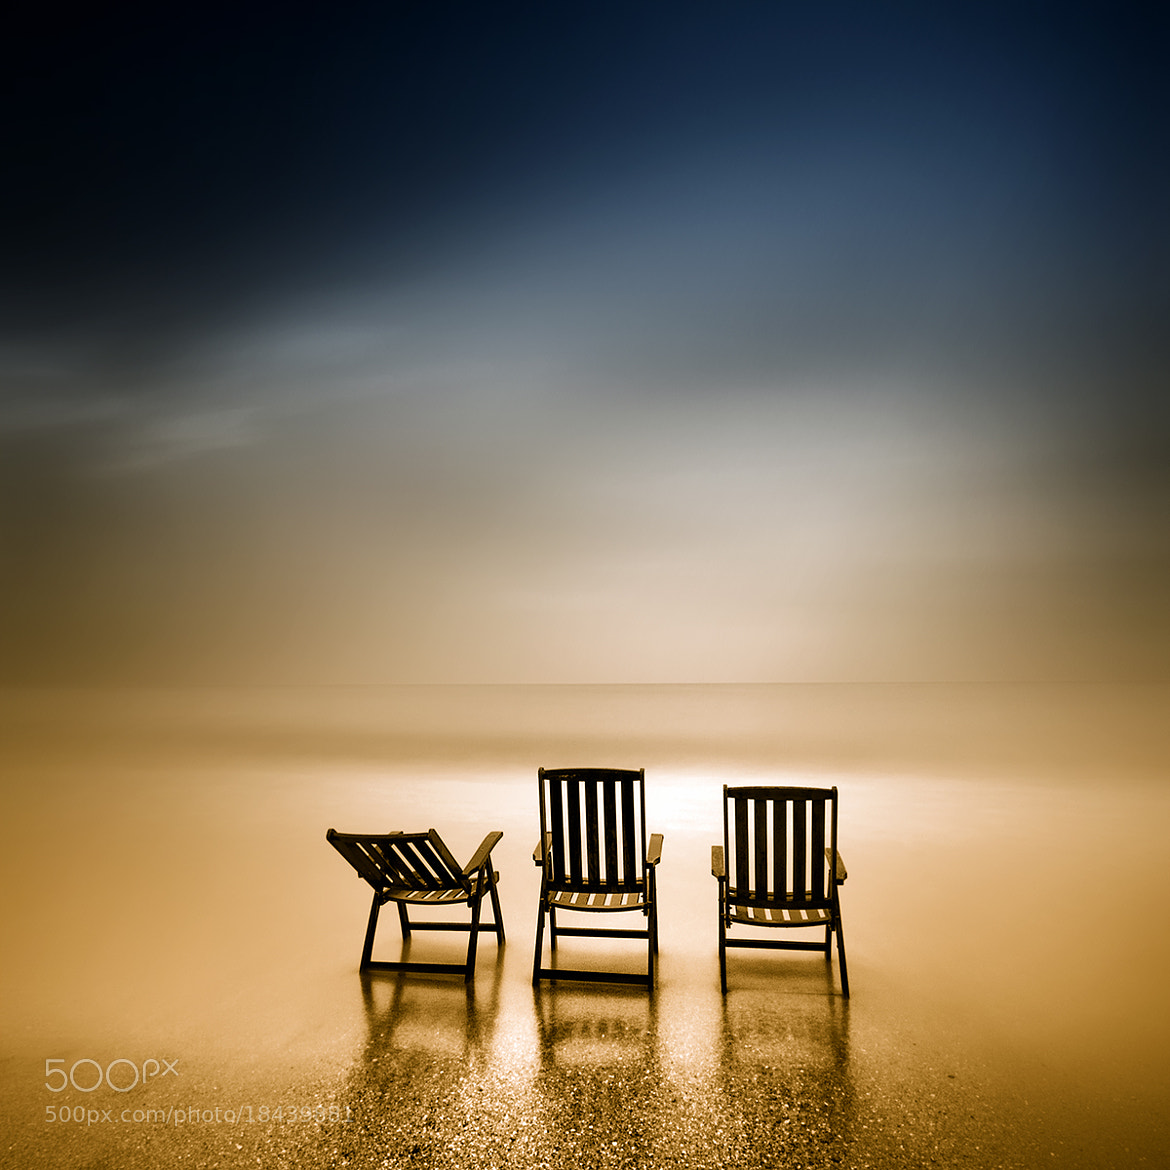 Photograph Waiting for the return by Kees Smans on 500px